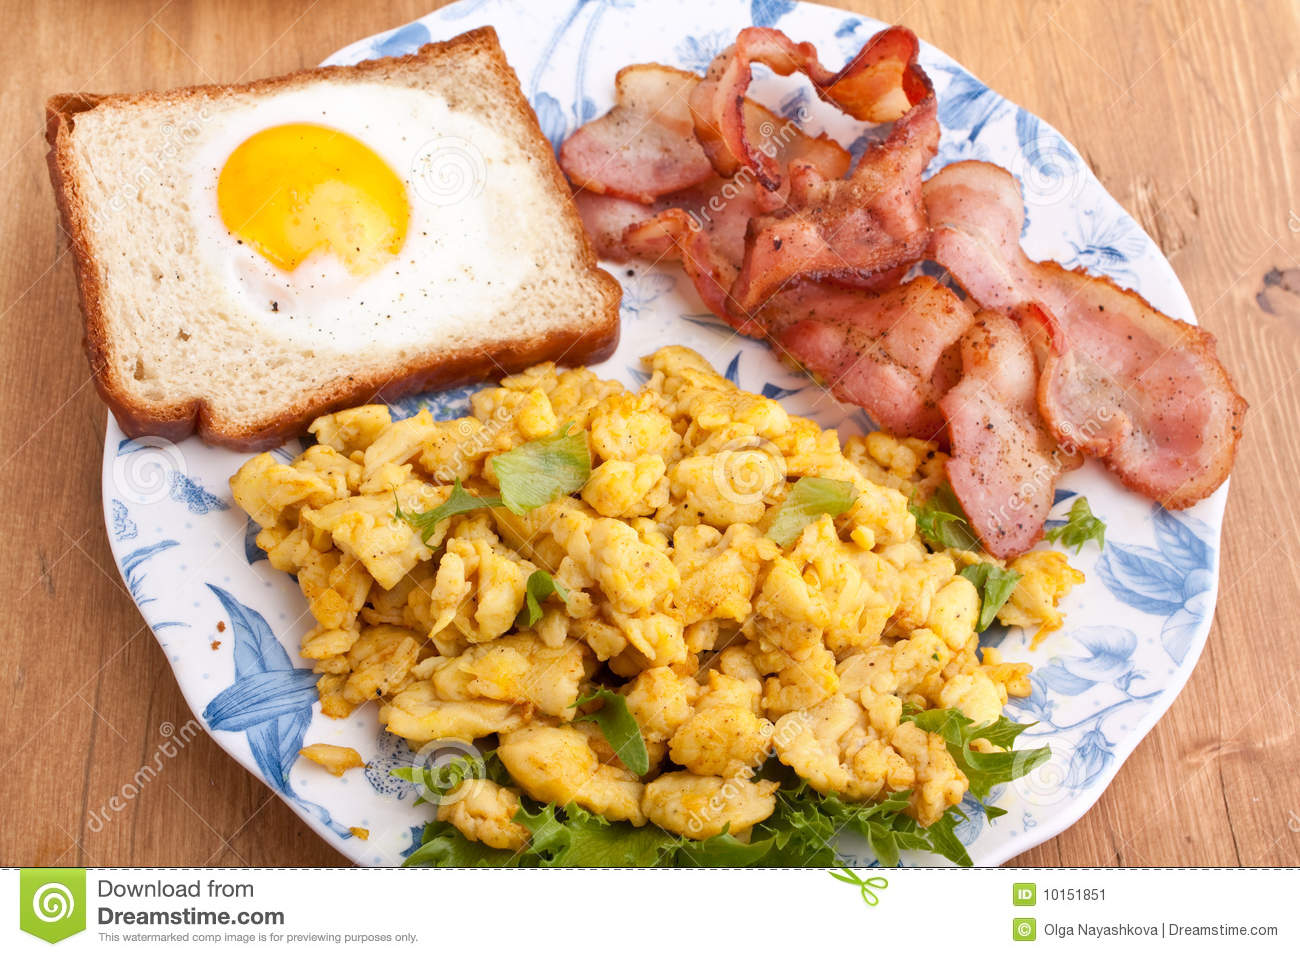 Eggy Bread, Eggs And Bacon Stock Image - Image: 10151851